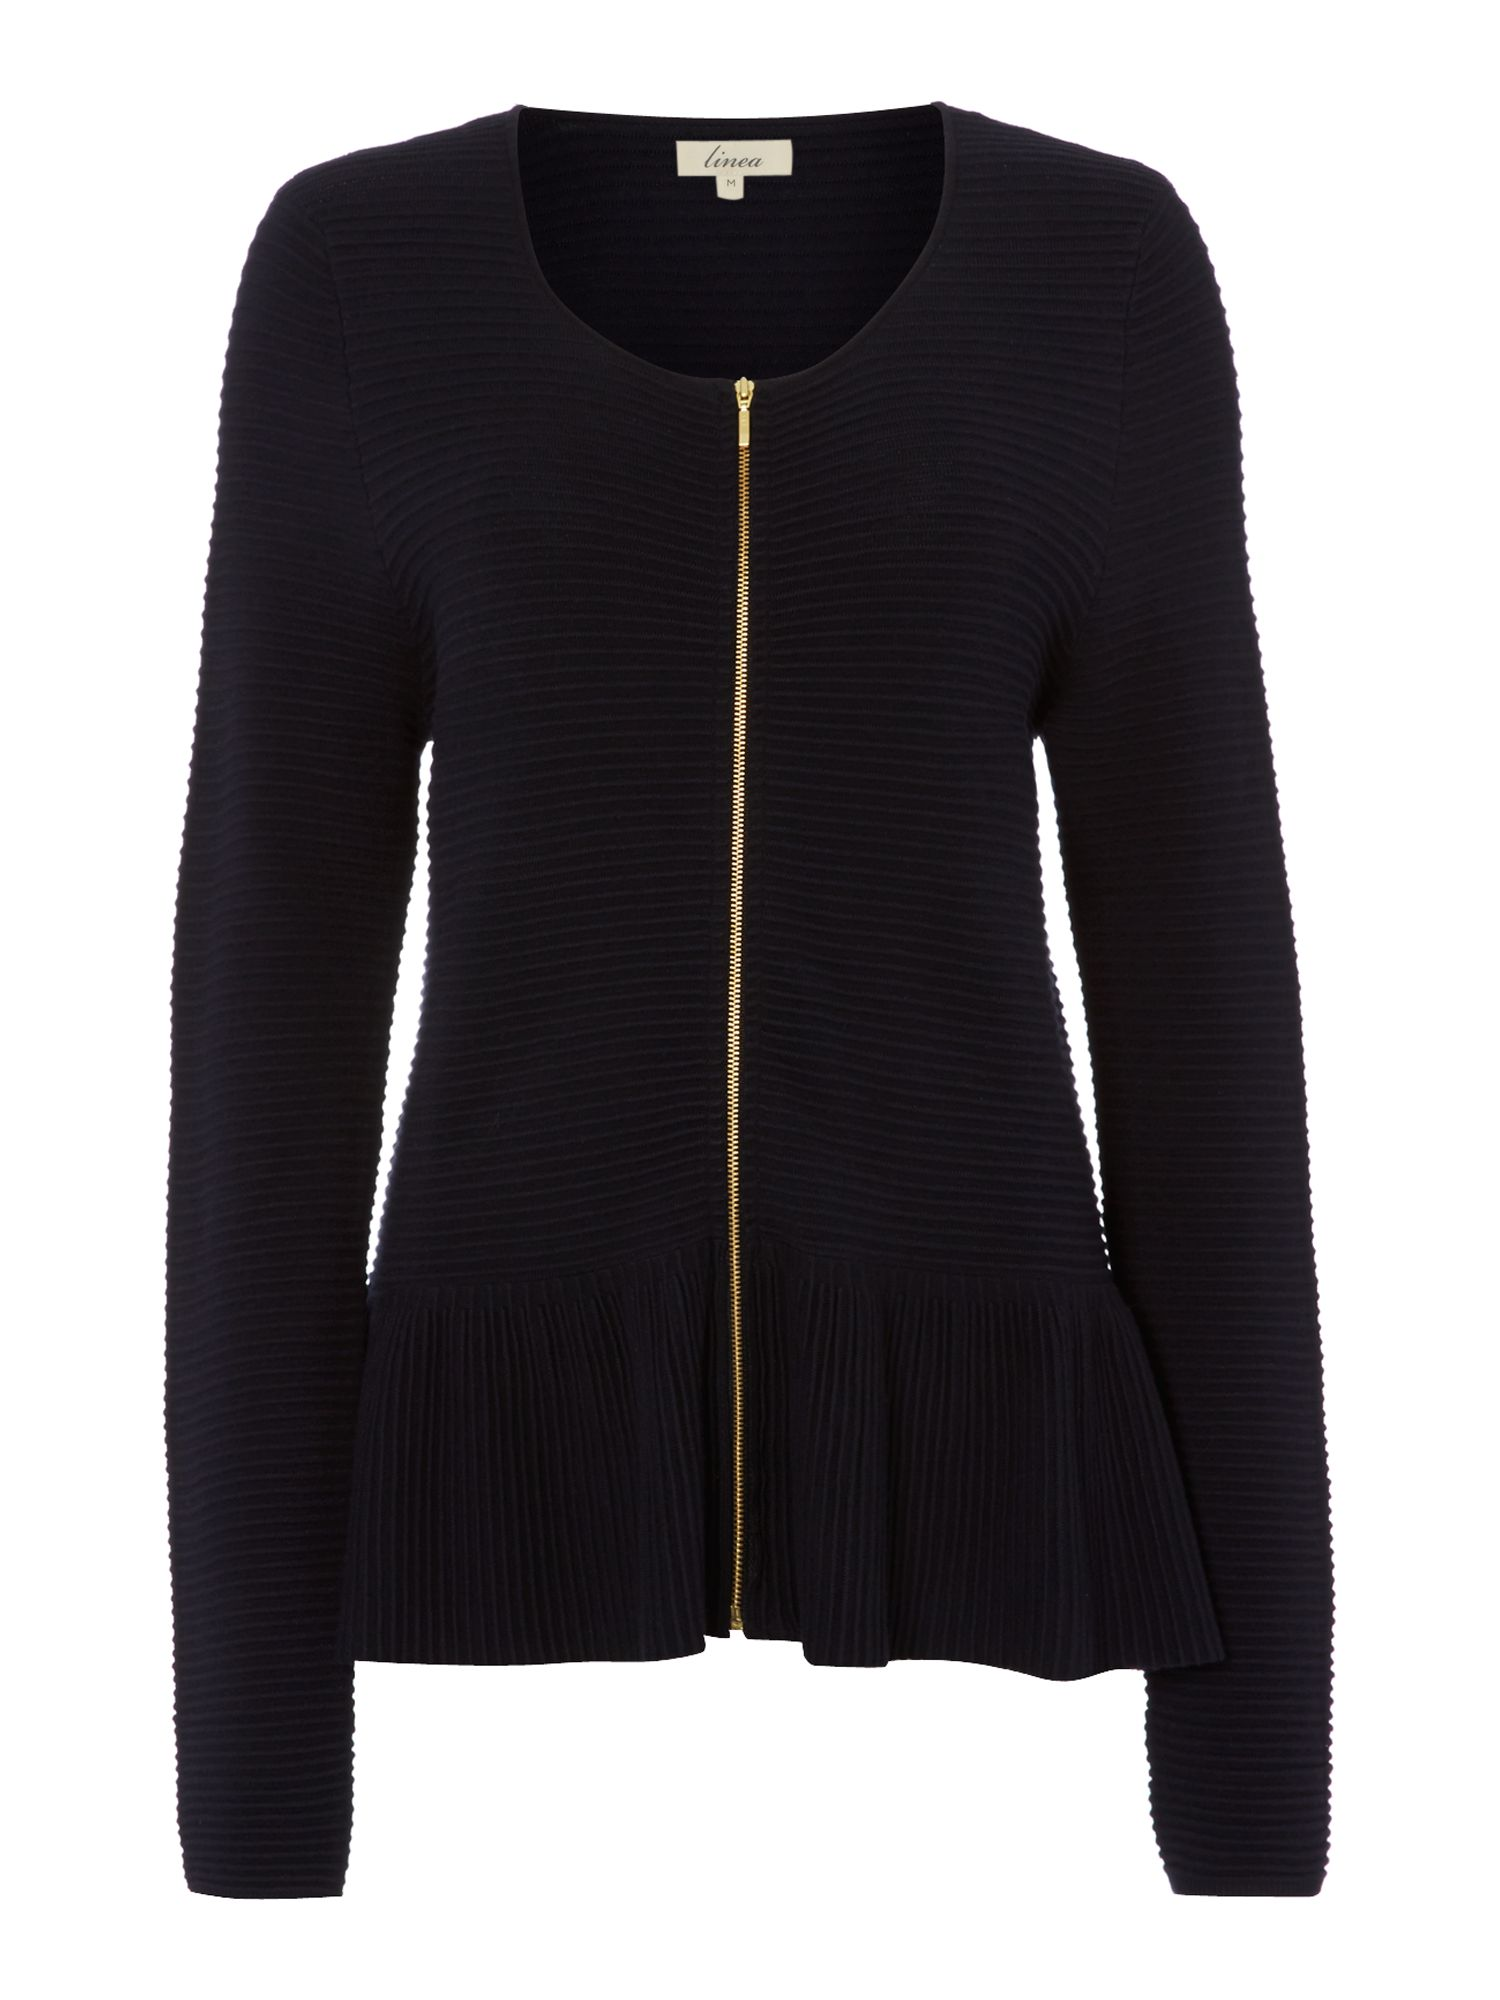 Ribbed zip detail jacket